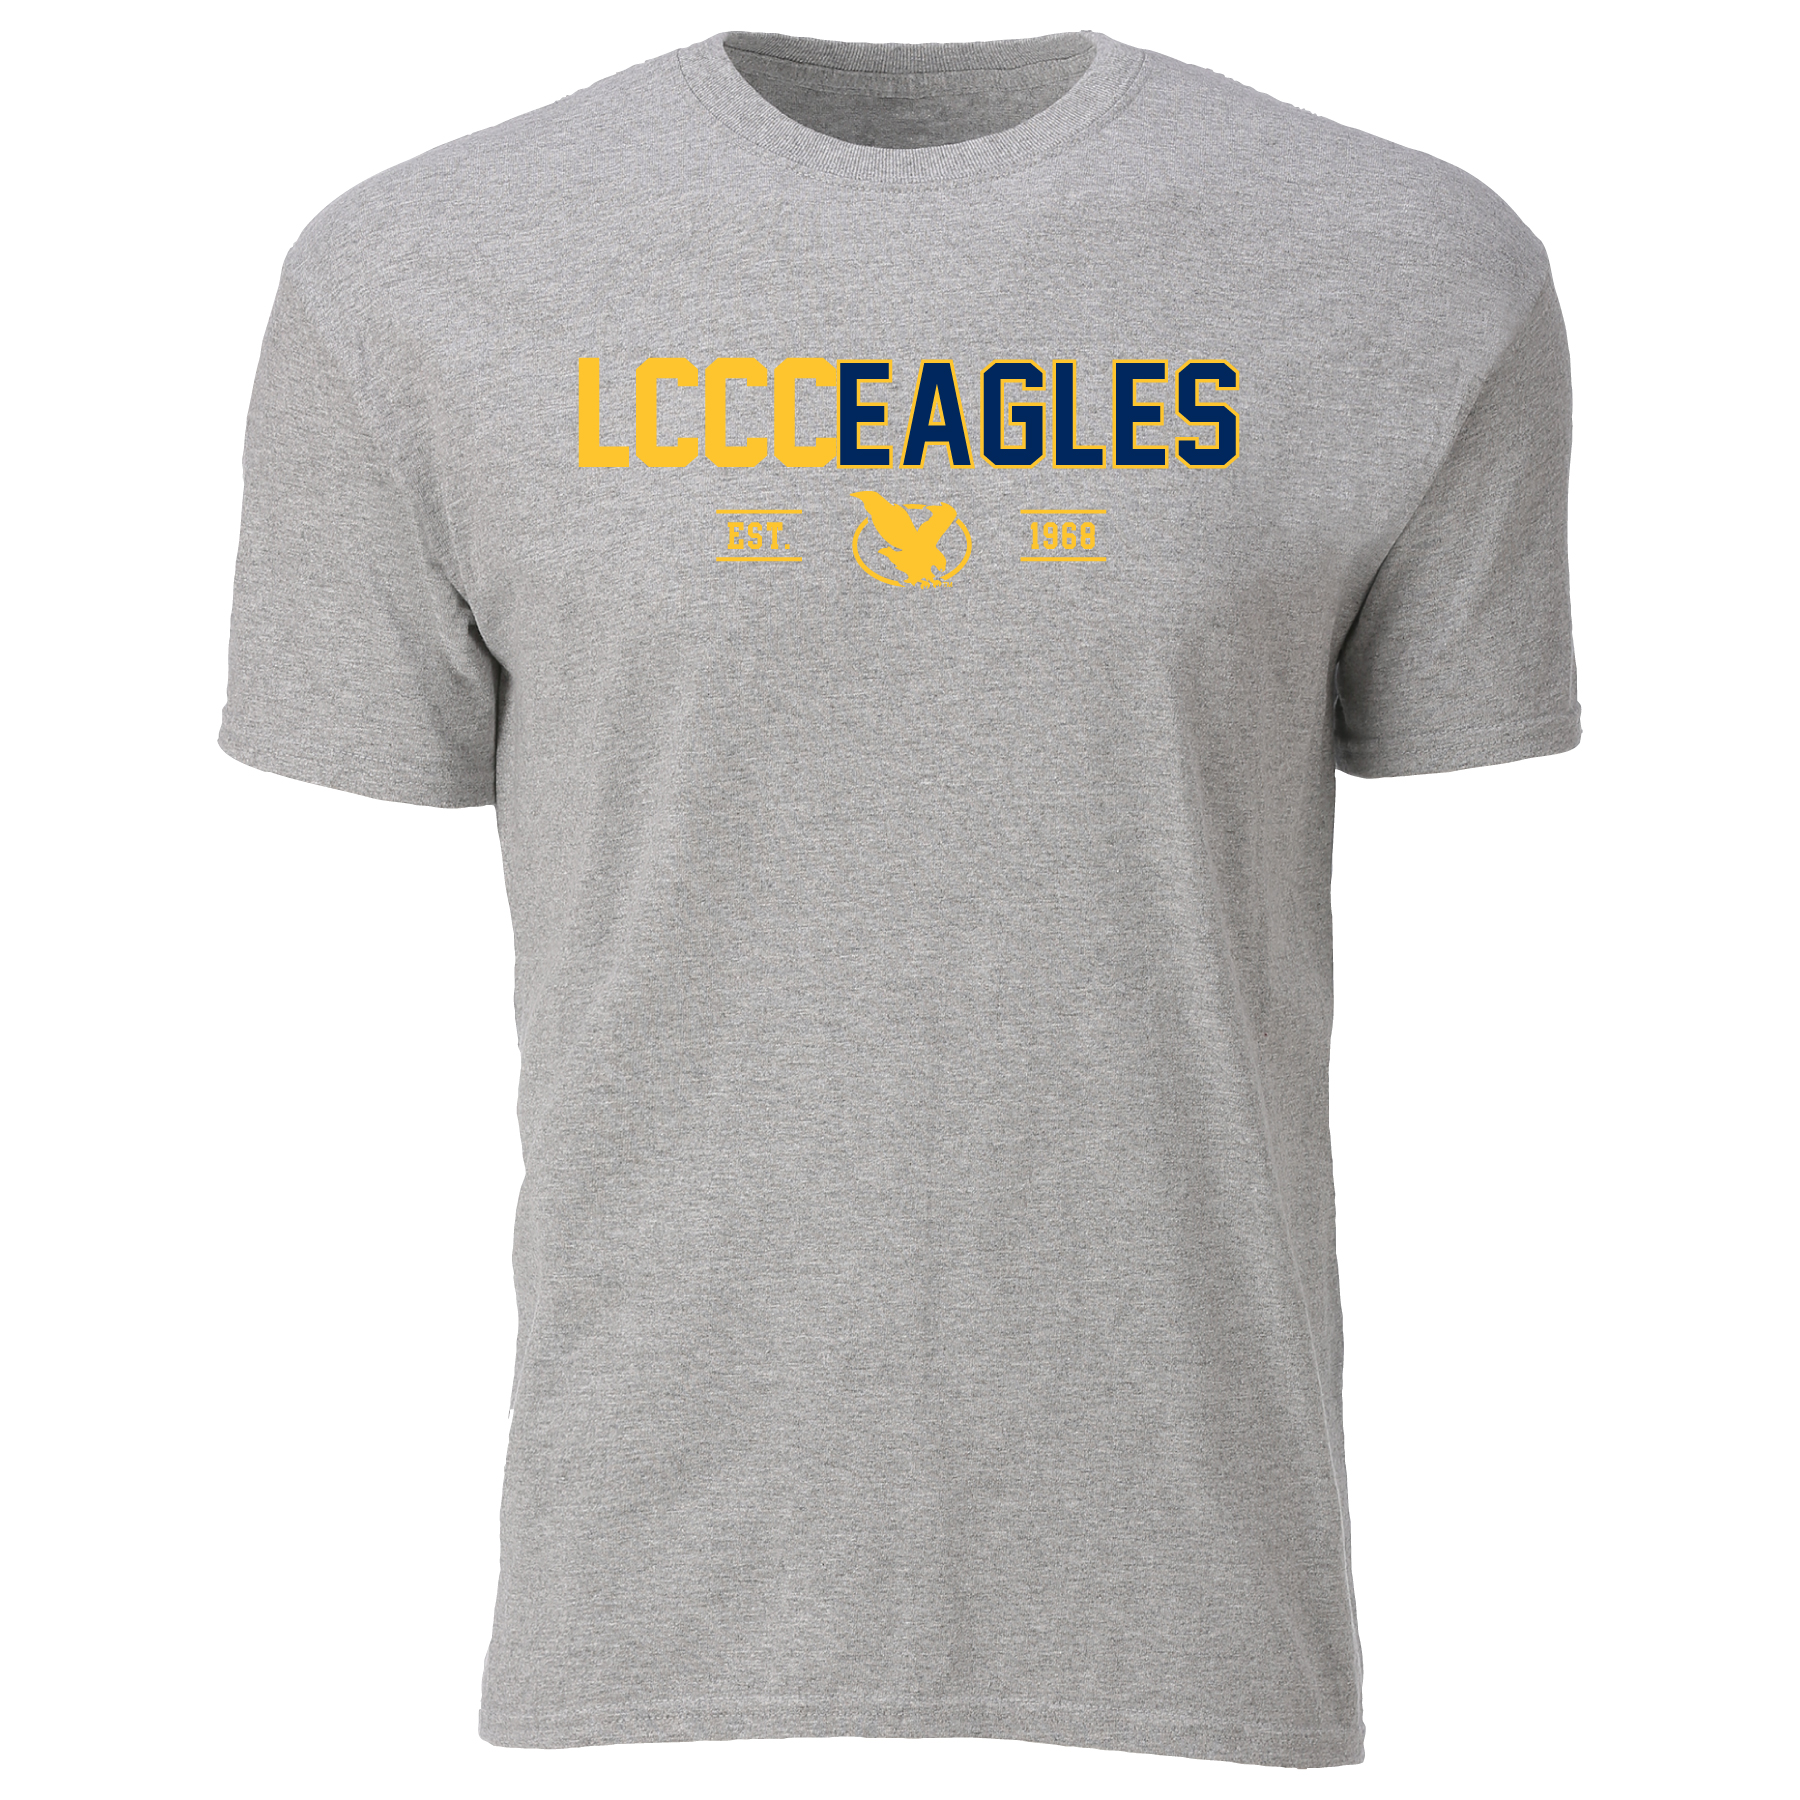 LCCC Eagles Short Sleeve Tee